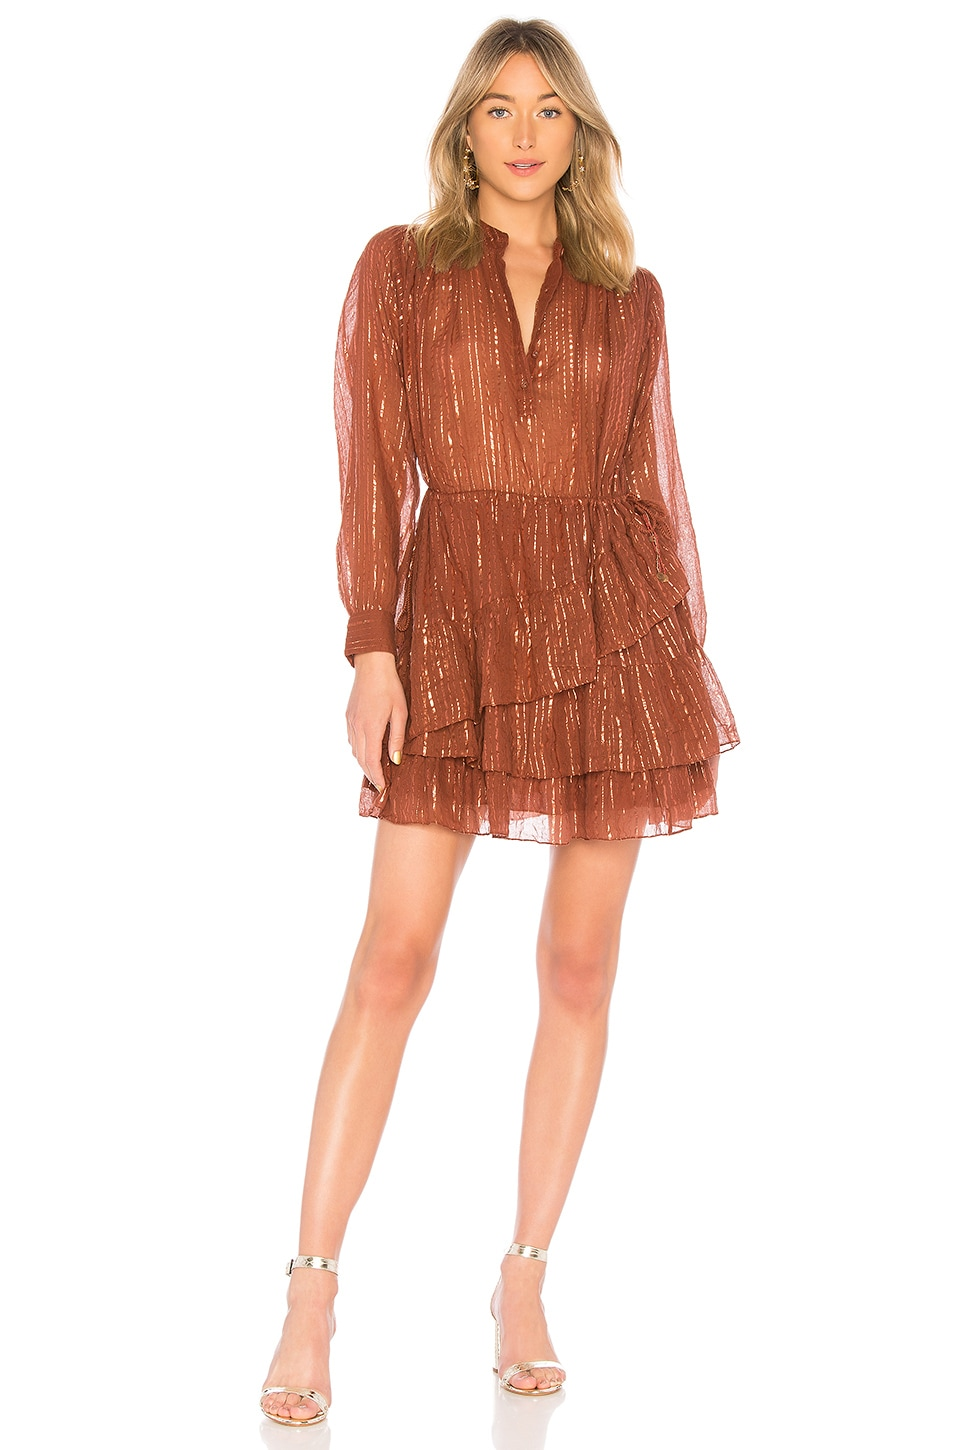 Ulla Johnson Della Dress in Mahogany